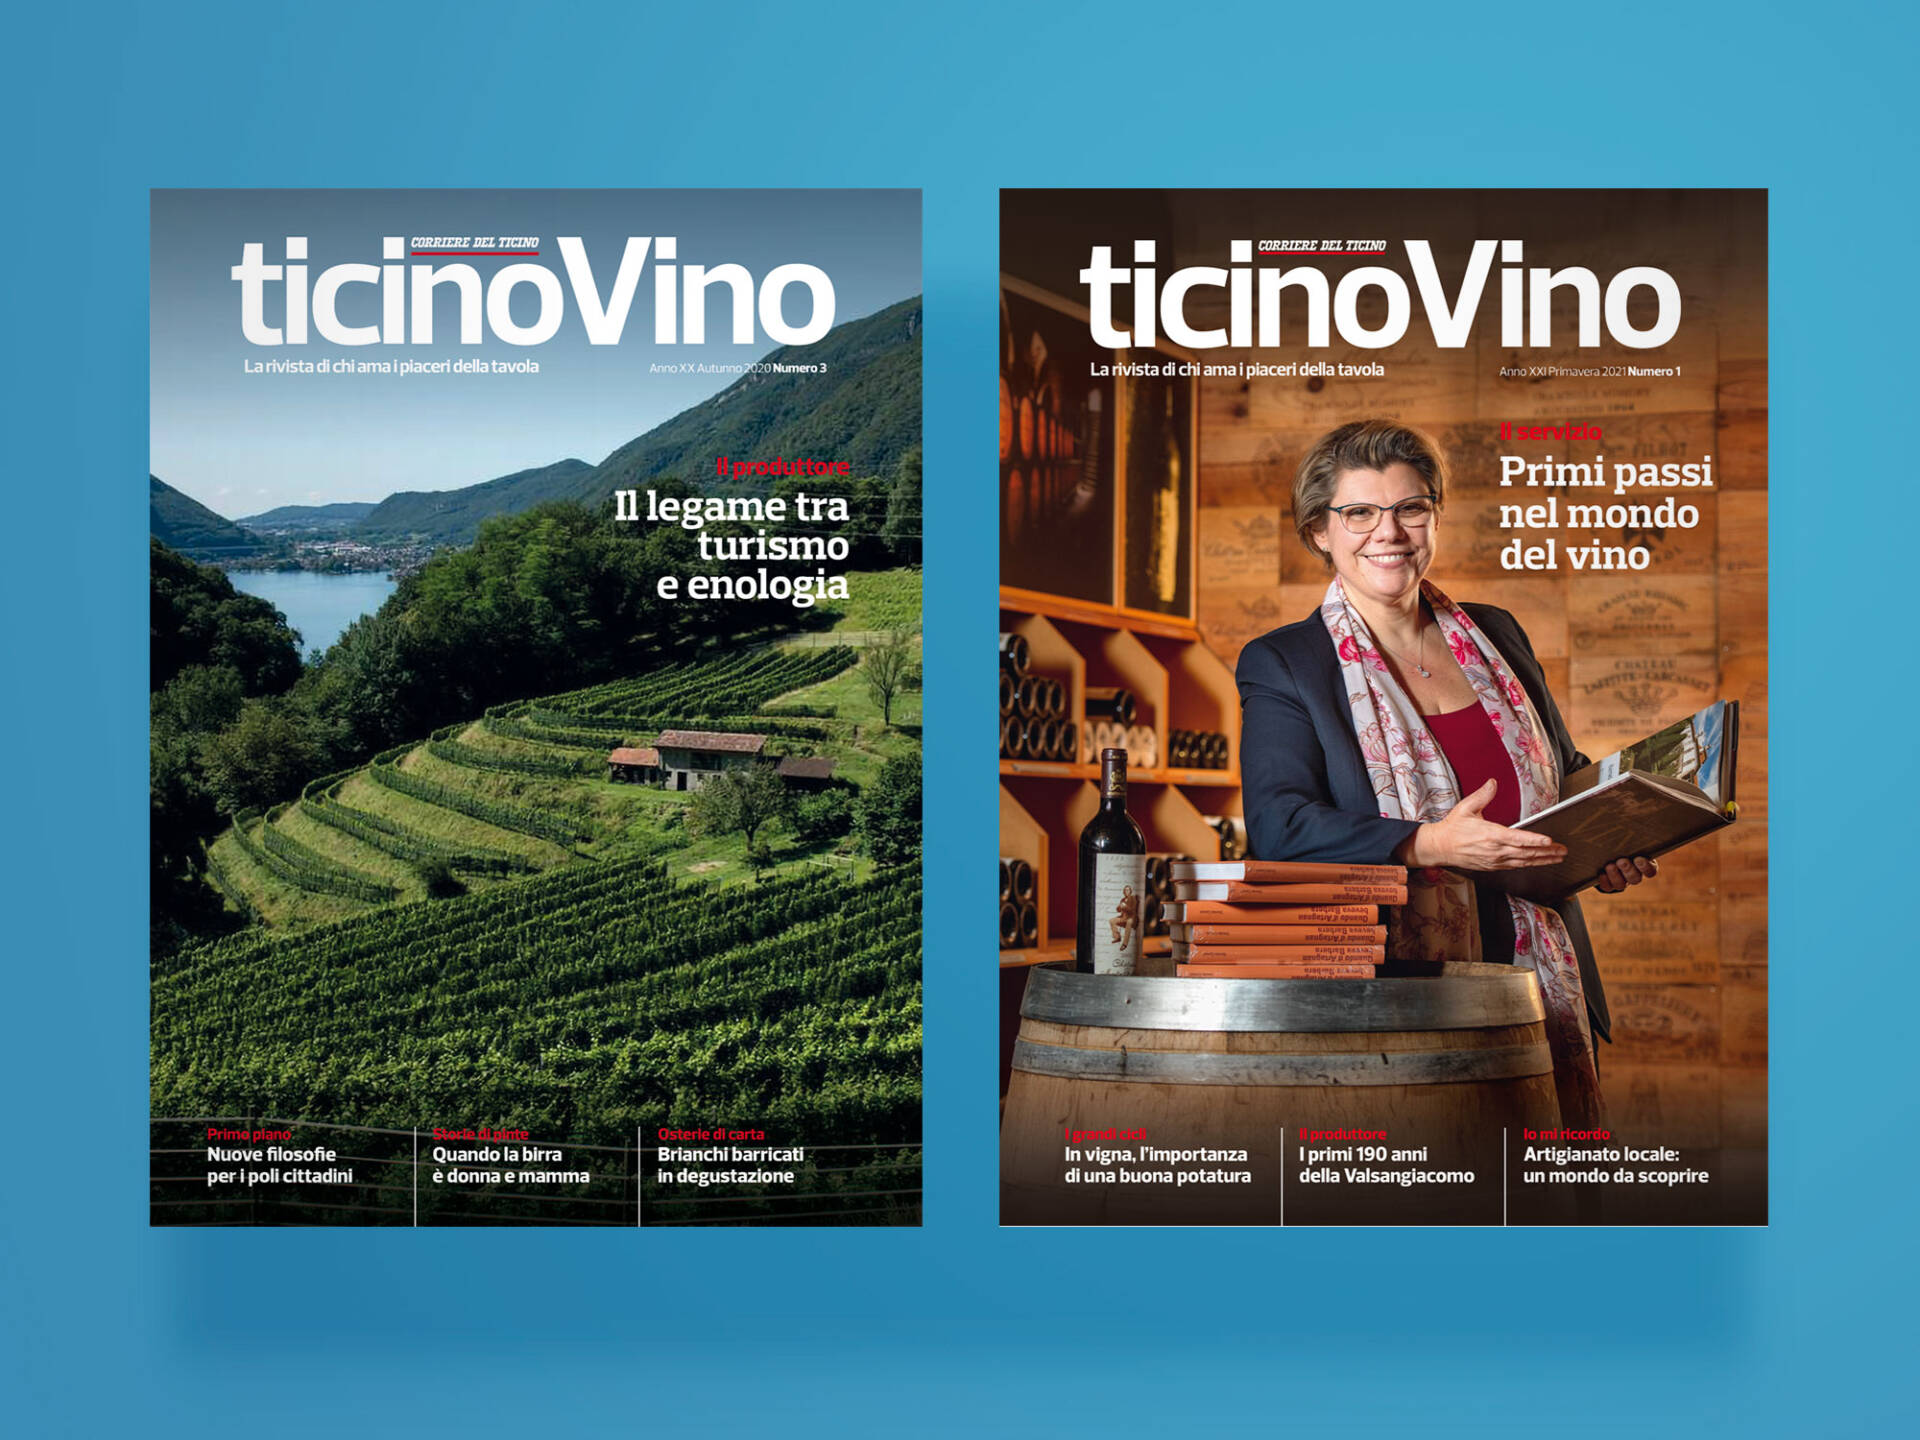 TicinoVino-Wein-Wenceslau-News-Design-01-ITA